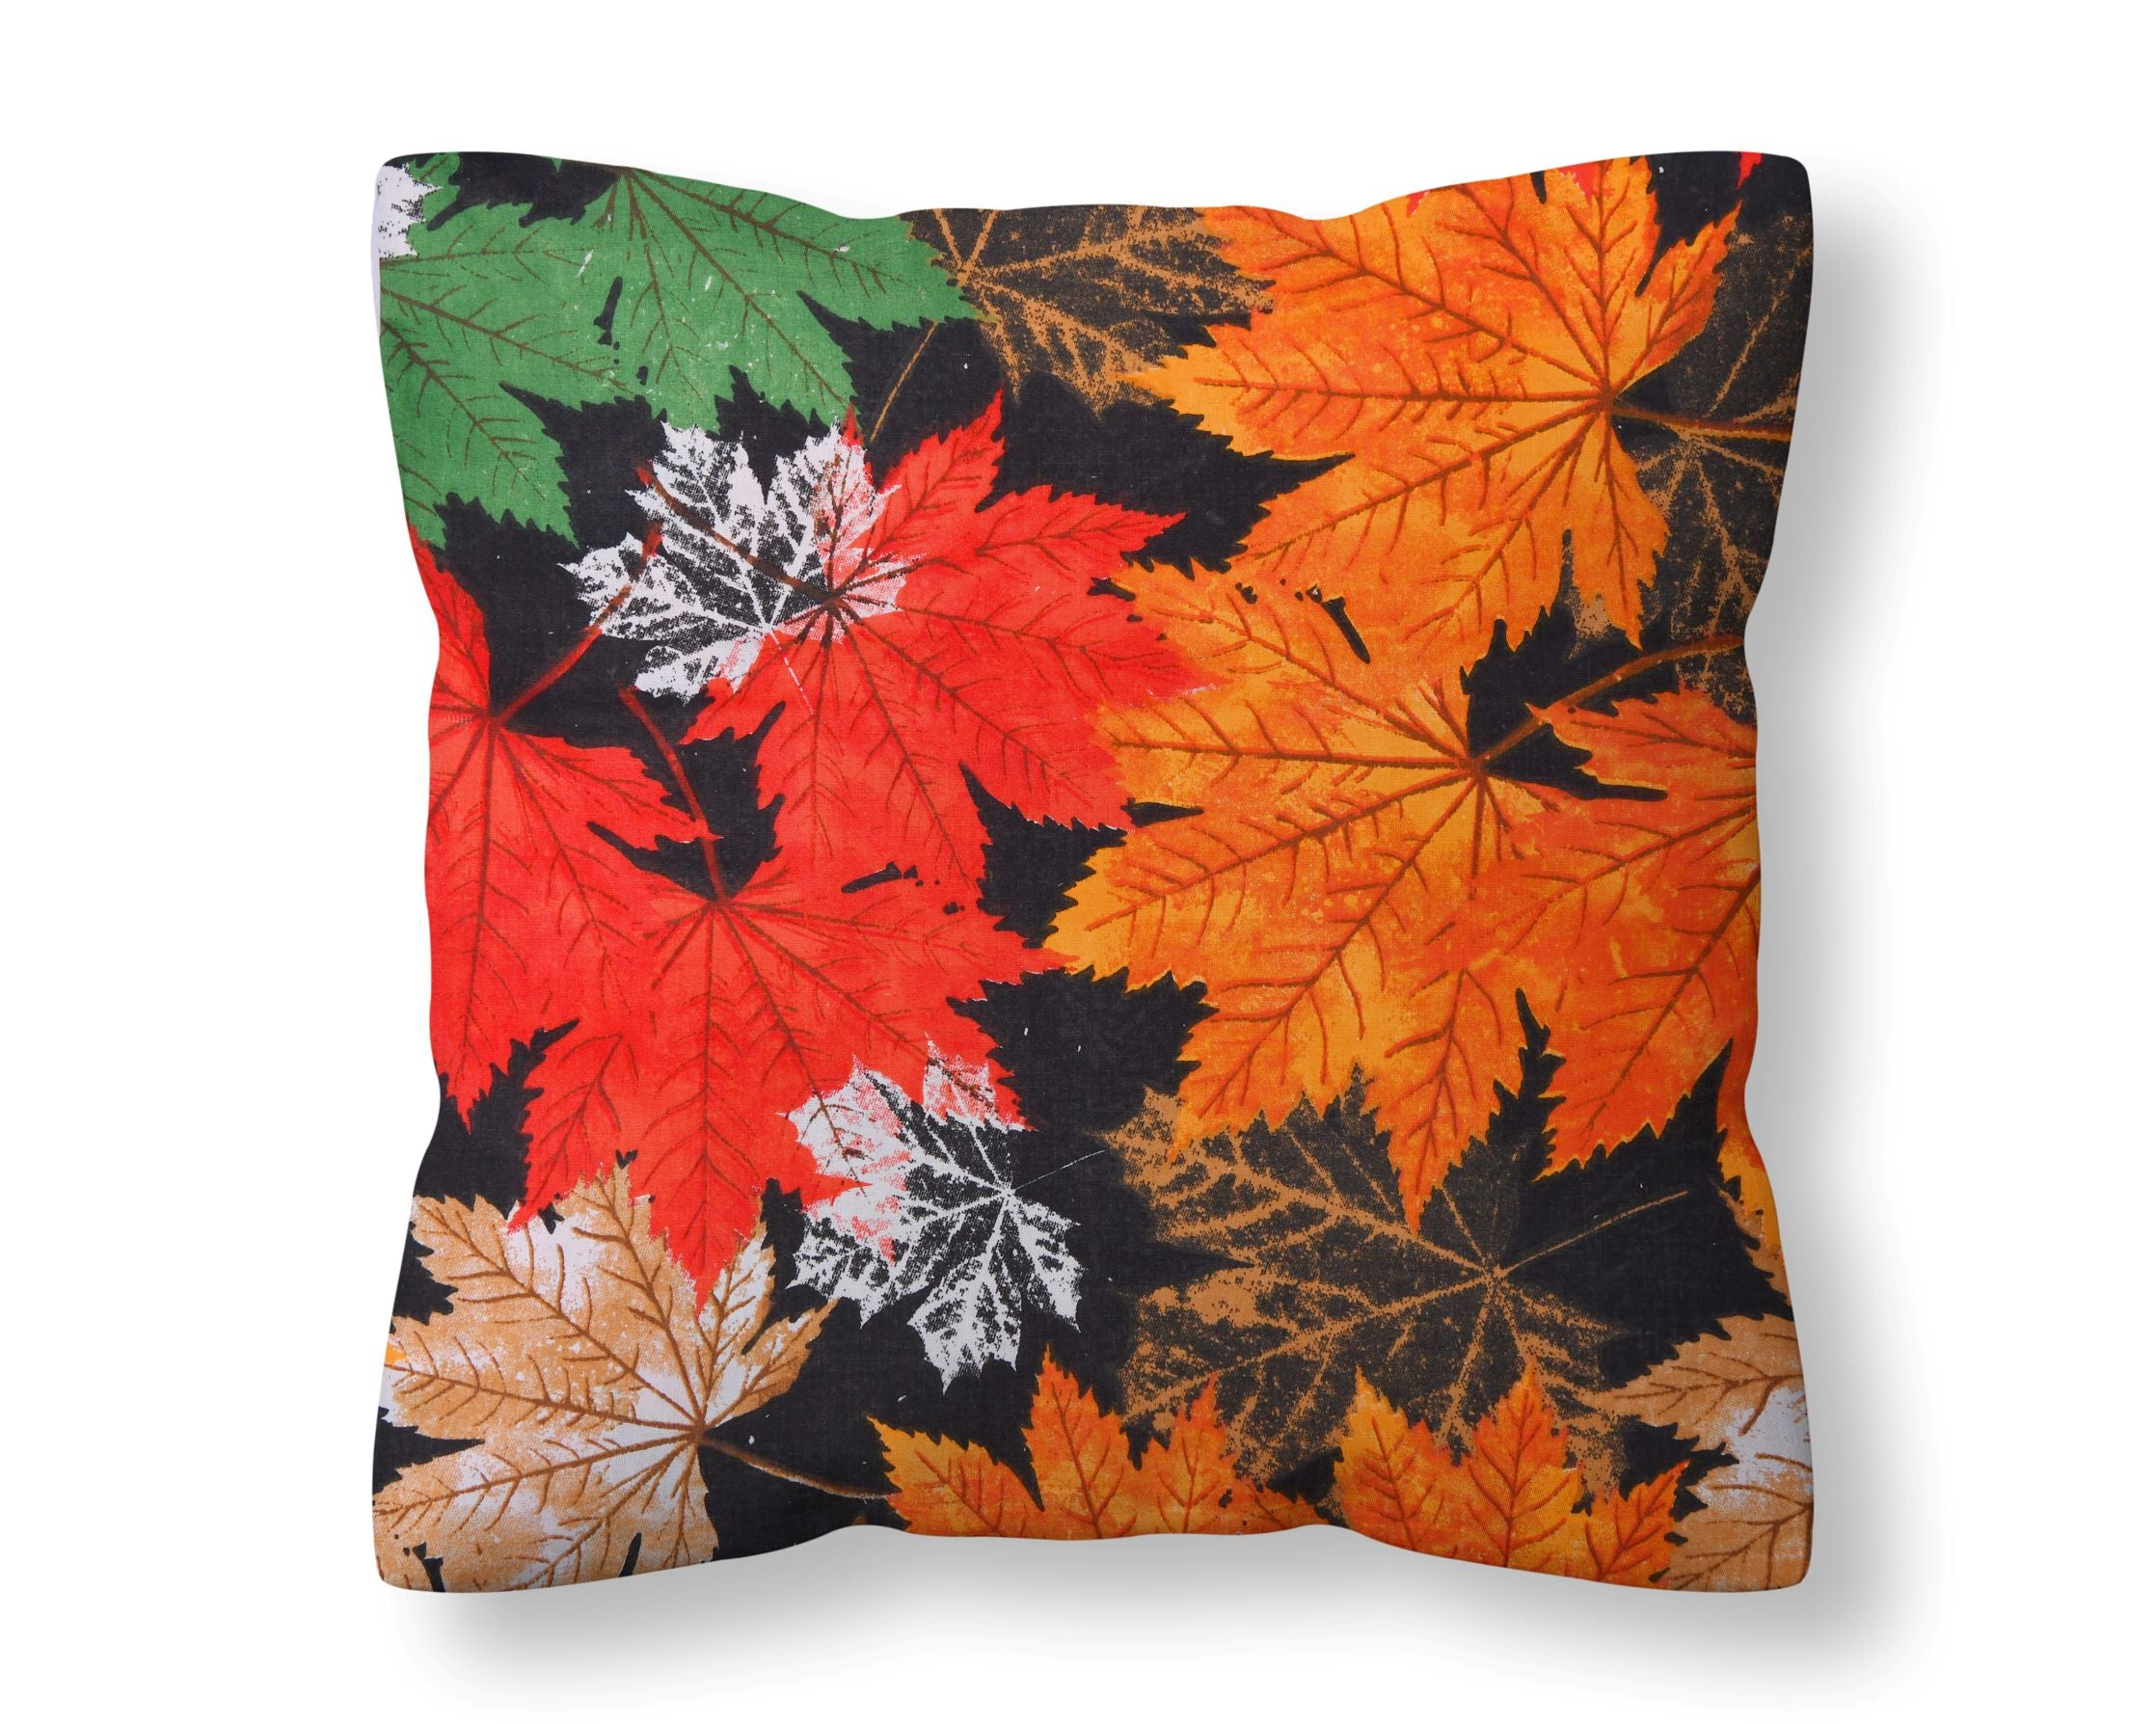 Autumn Maple Leaves Cushion Cover